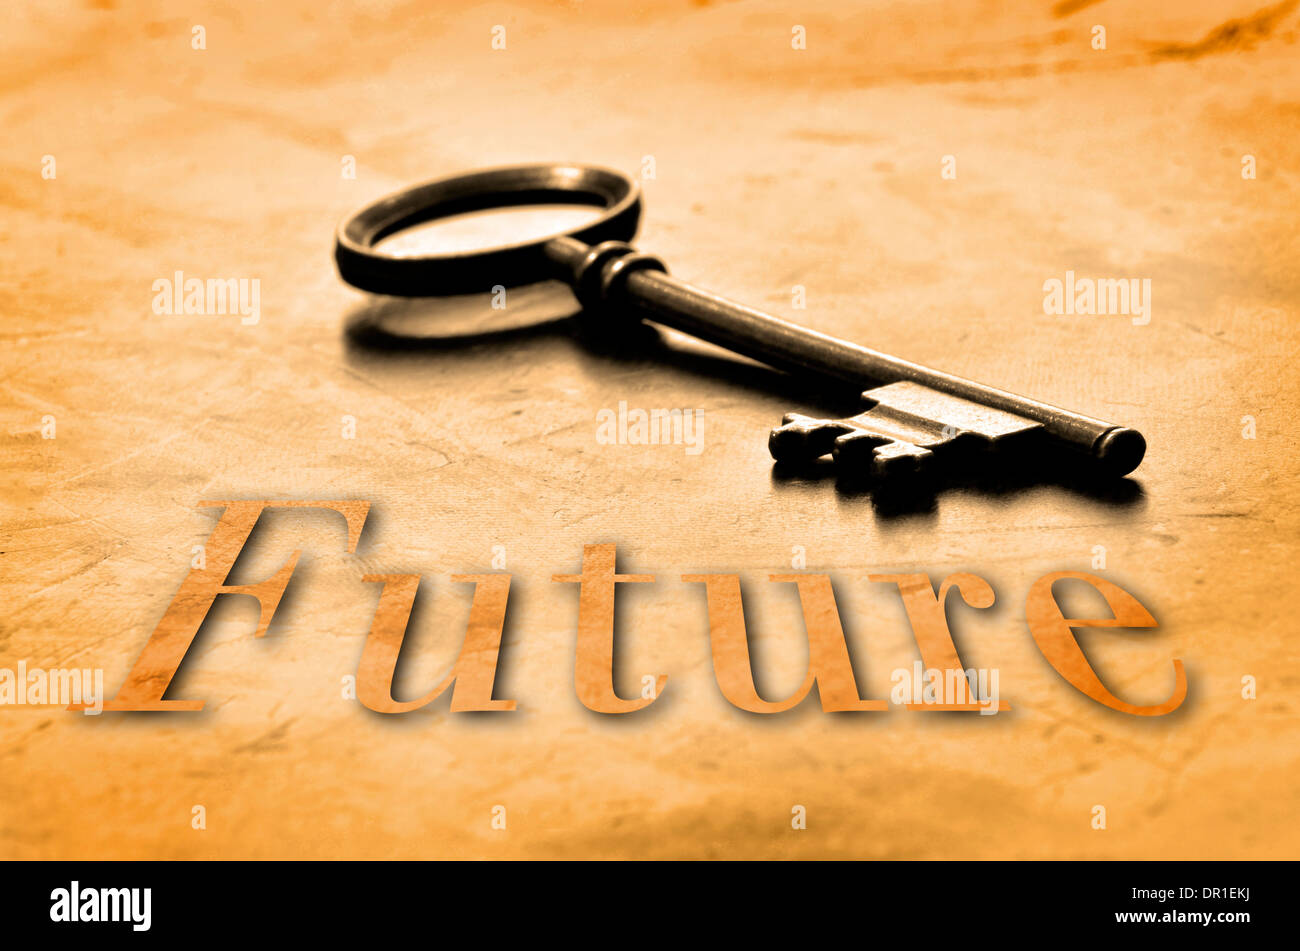 Key to the Future on an old worn wooden desk top - Stock Image